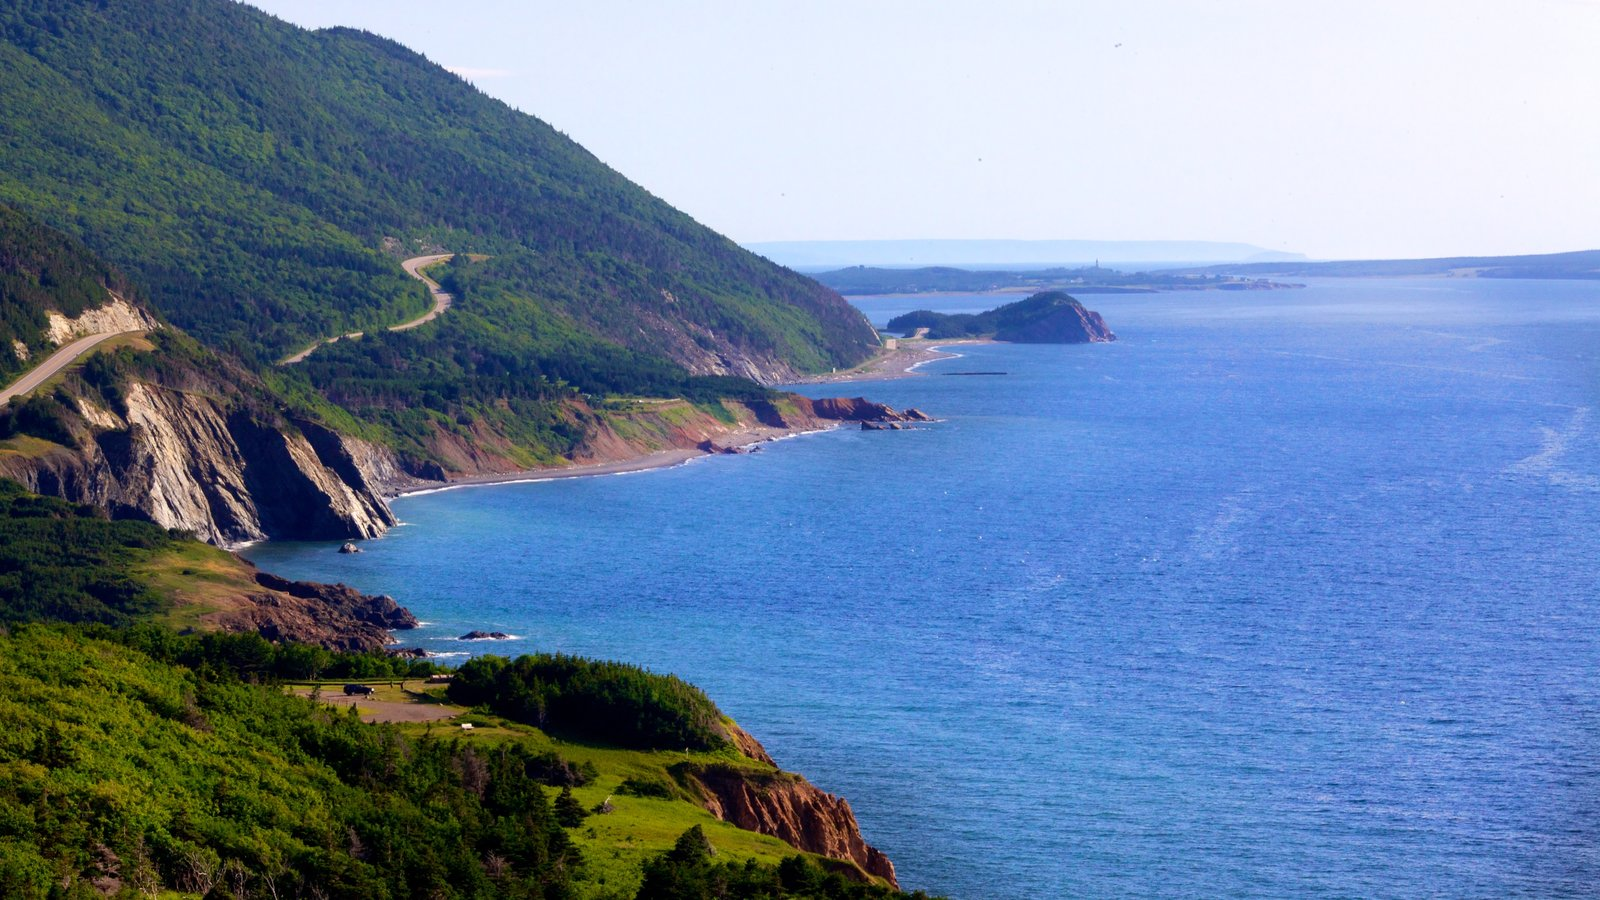 Cape Breton Highlands National Park que incluye costa escarpada